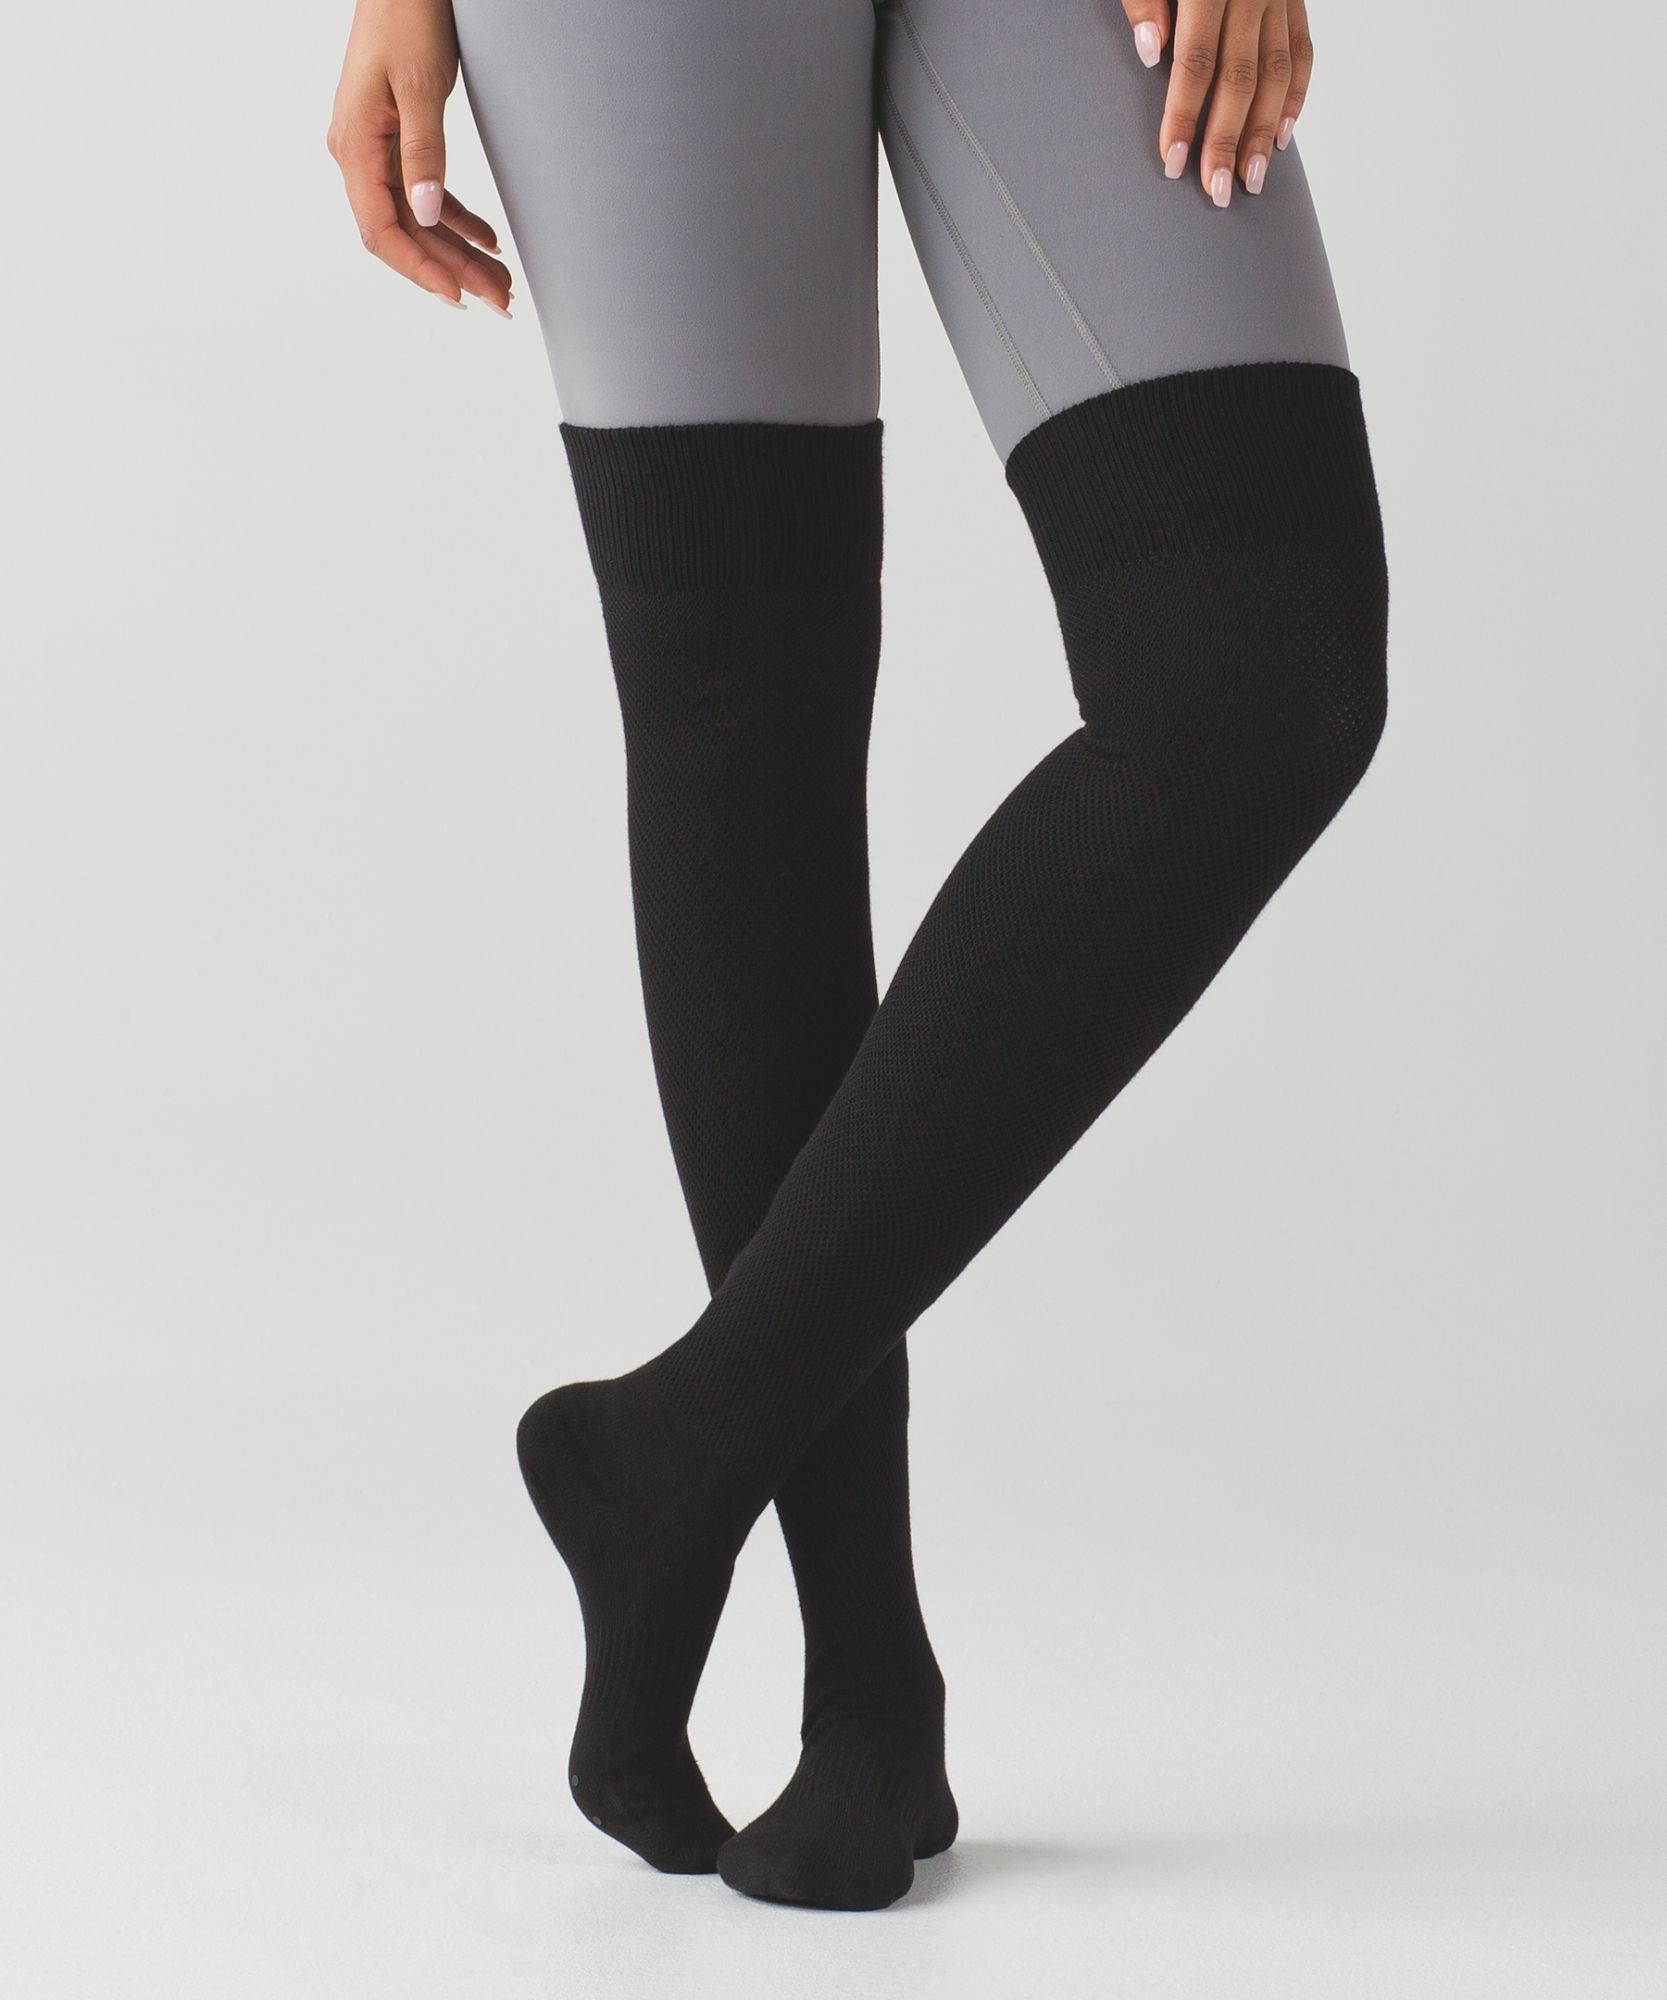 2f62ca9610f Layer these cozy socks over tights to keep warm in Savasana or on  cold-weather commutes to the studio.